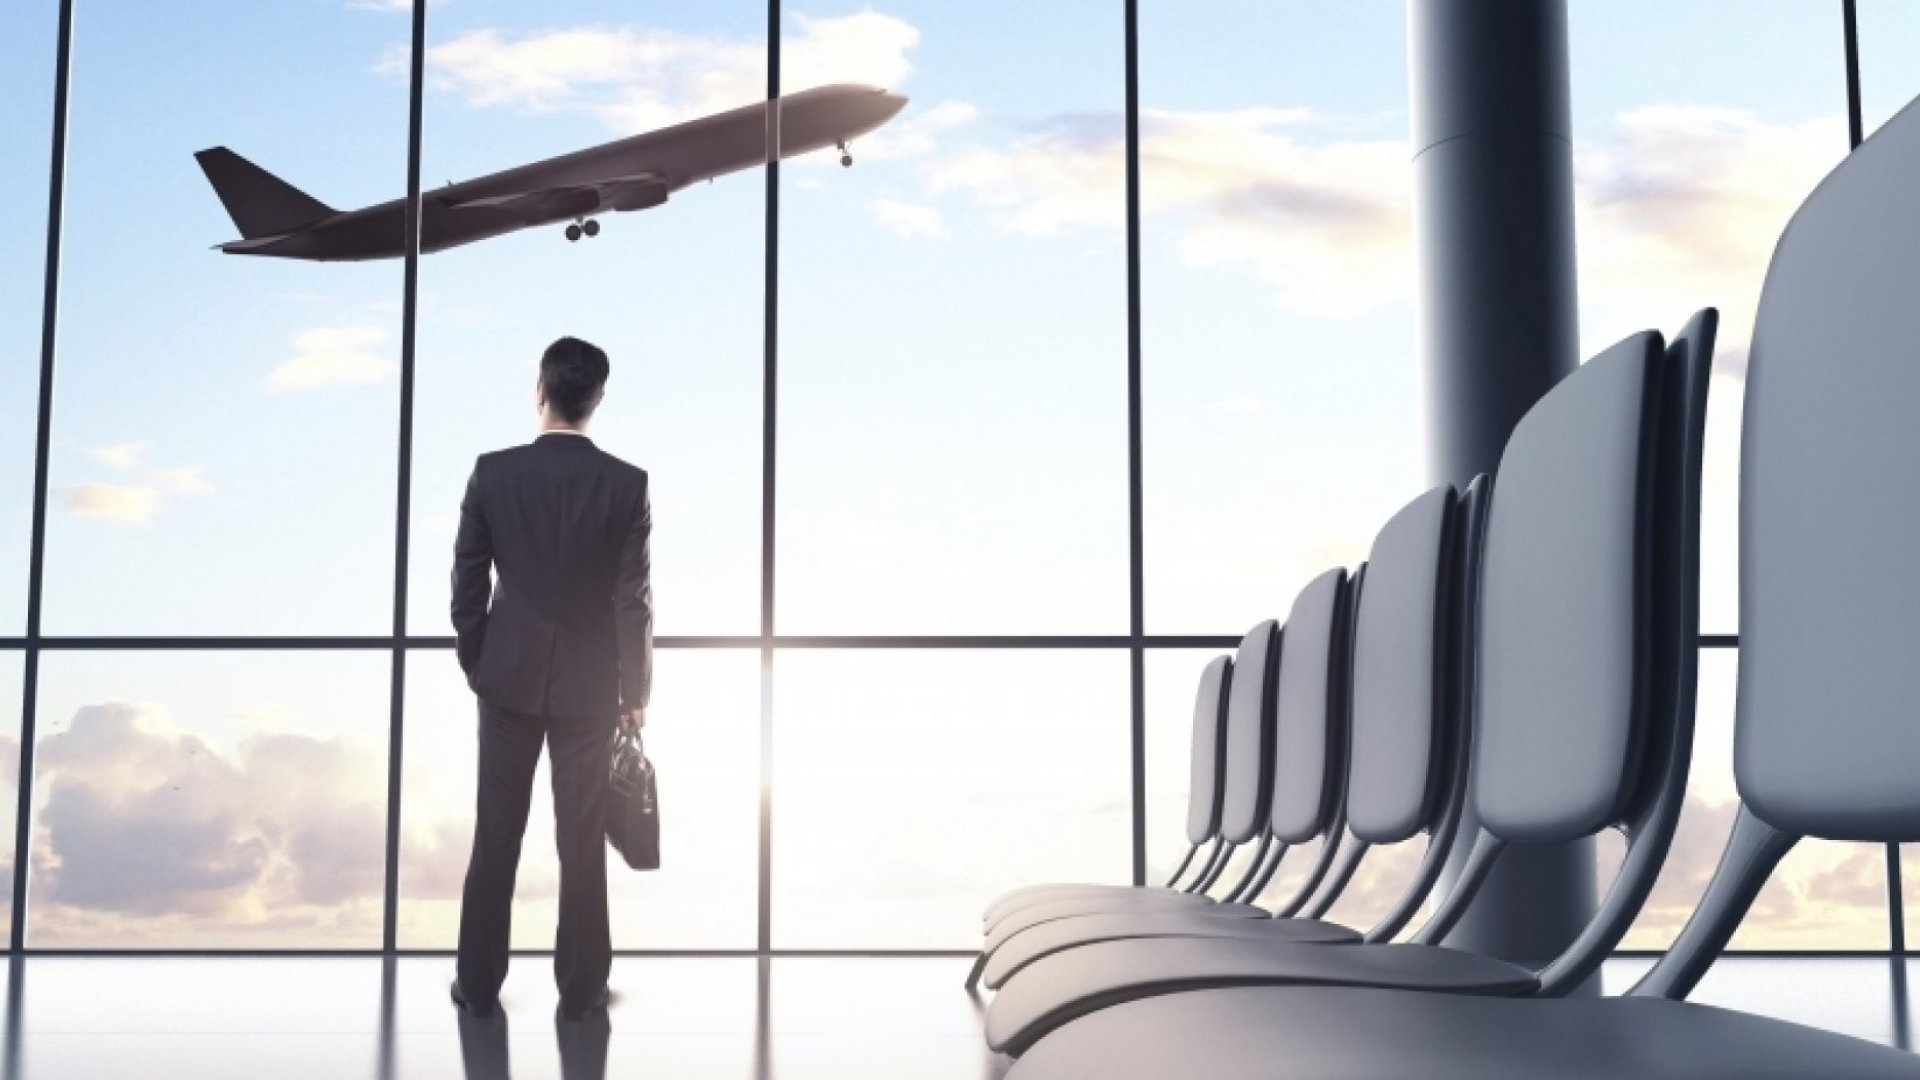 6 Mistakes Even Savvy Business Travelers Make When Flying